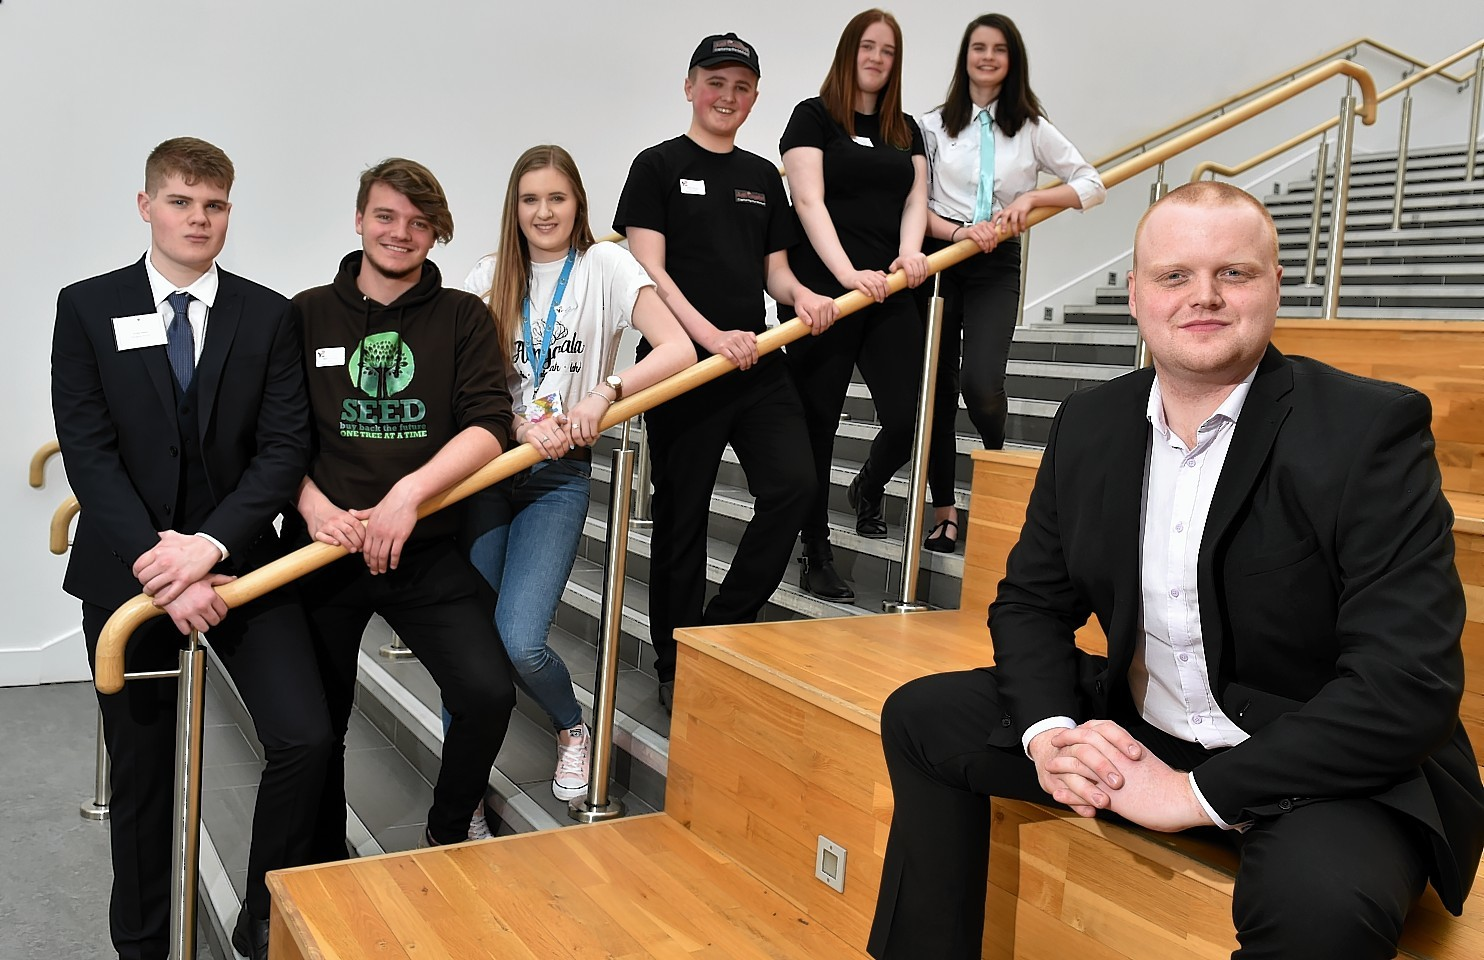 l-r team managing directors Archie Whyte, Spencer O'Grady, Mairi Falls, Jordan Kearney, Robyn Connell, Megan Kemp with lead judge Jamie Hutcheon of Cocoa Ooze